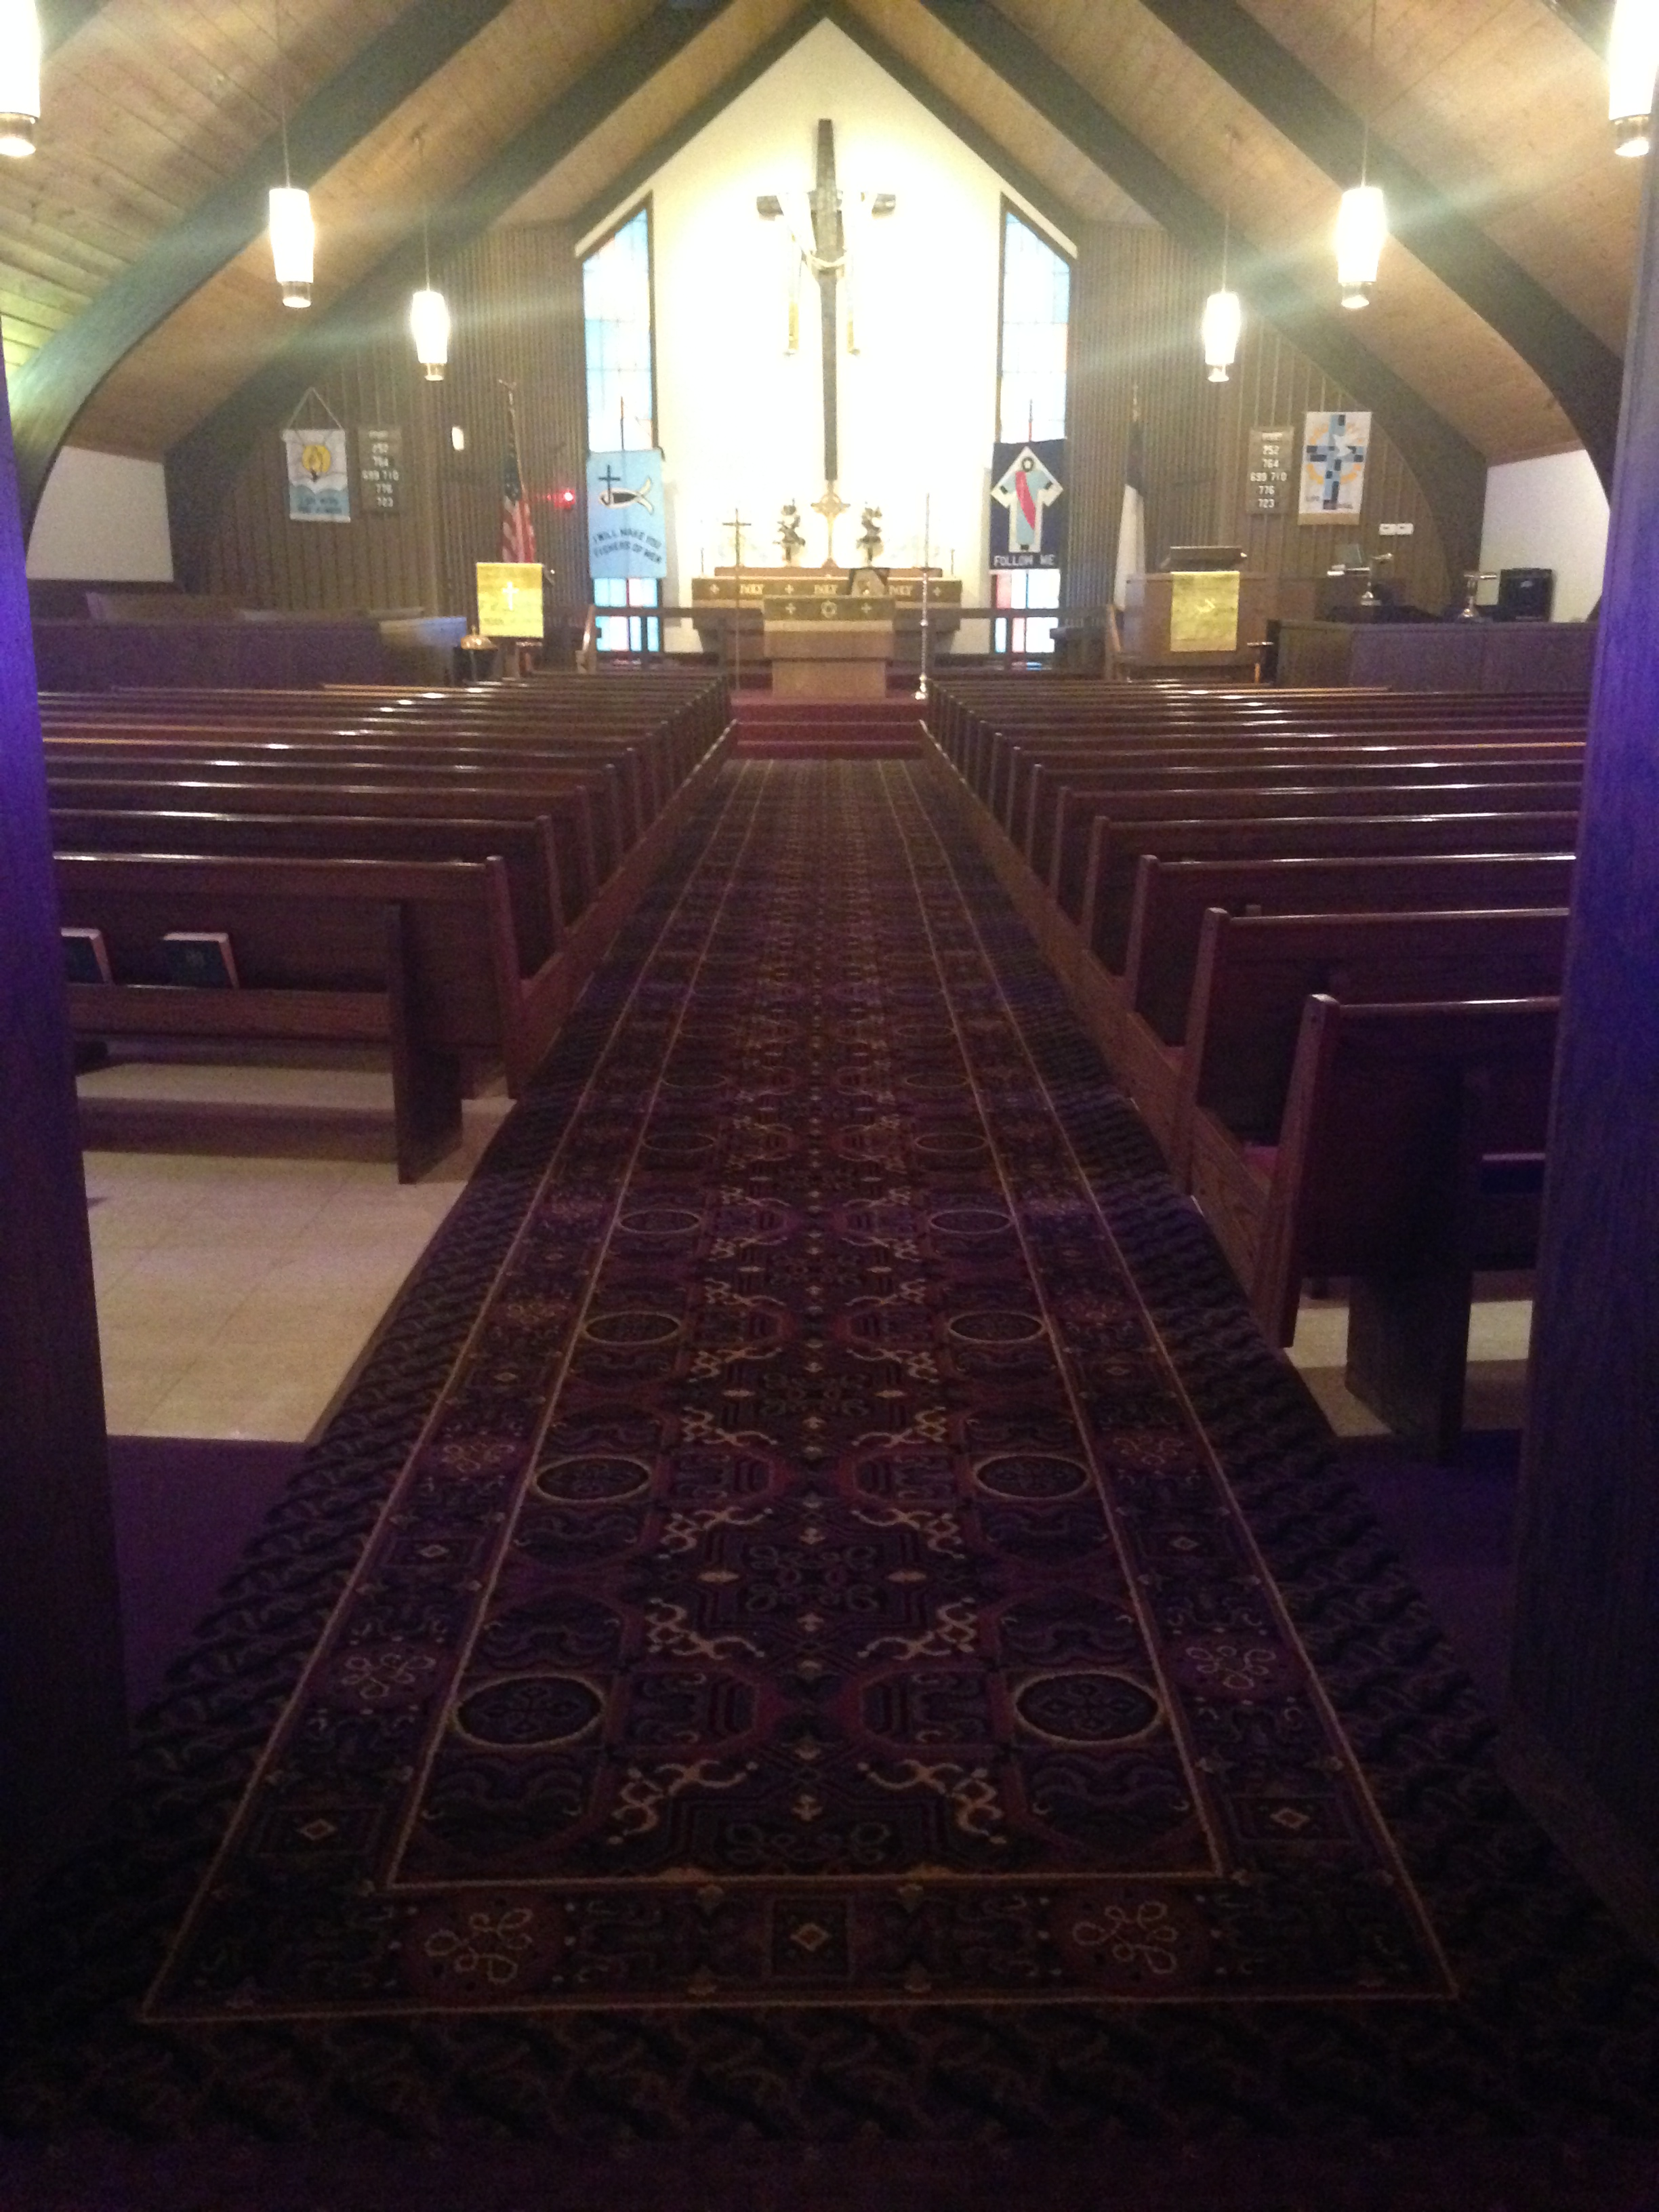 Church gets NEW carpet  Schuster Design Studio Inc  Overland Park KSKansas City Metro Area